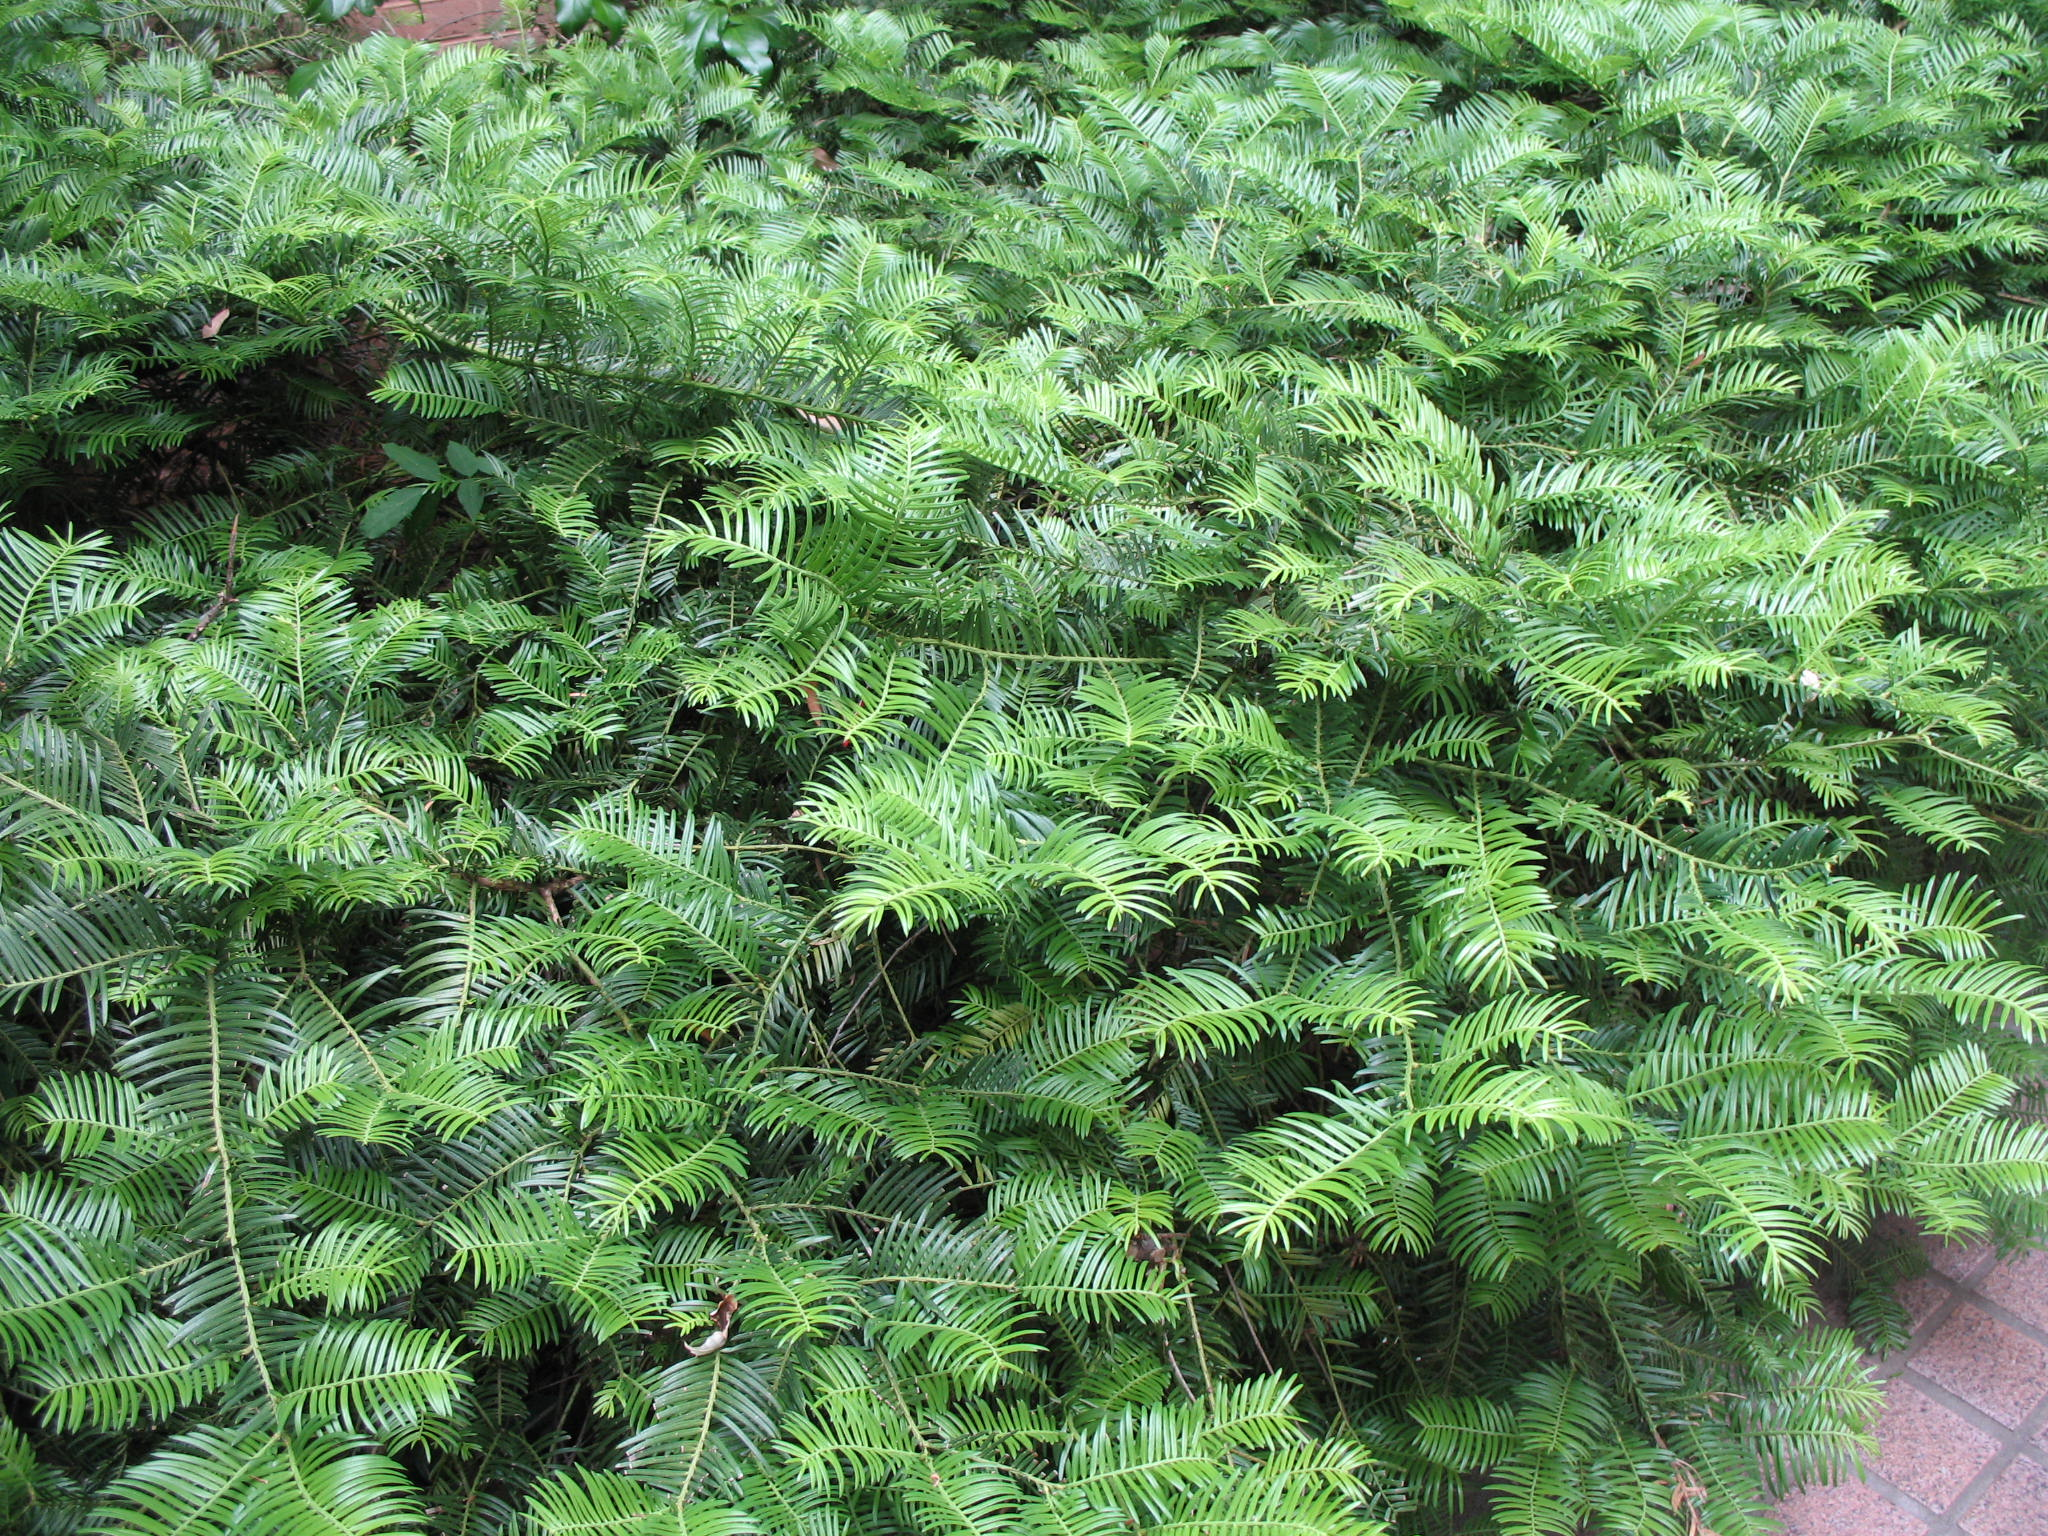 Cephalotaxus harringtonia var. drupacea     / Cephalotaxus harringtonia var. drupacea